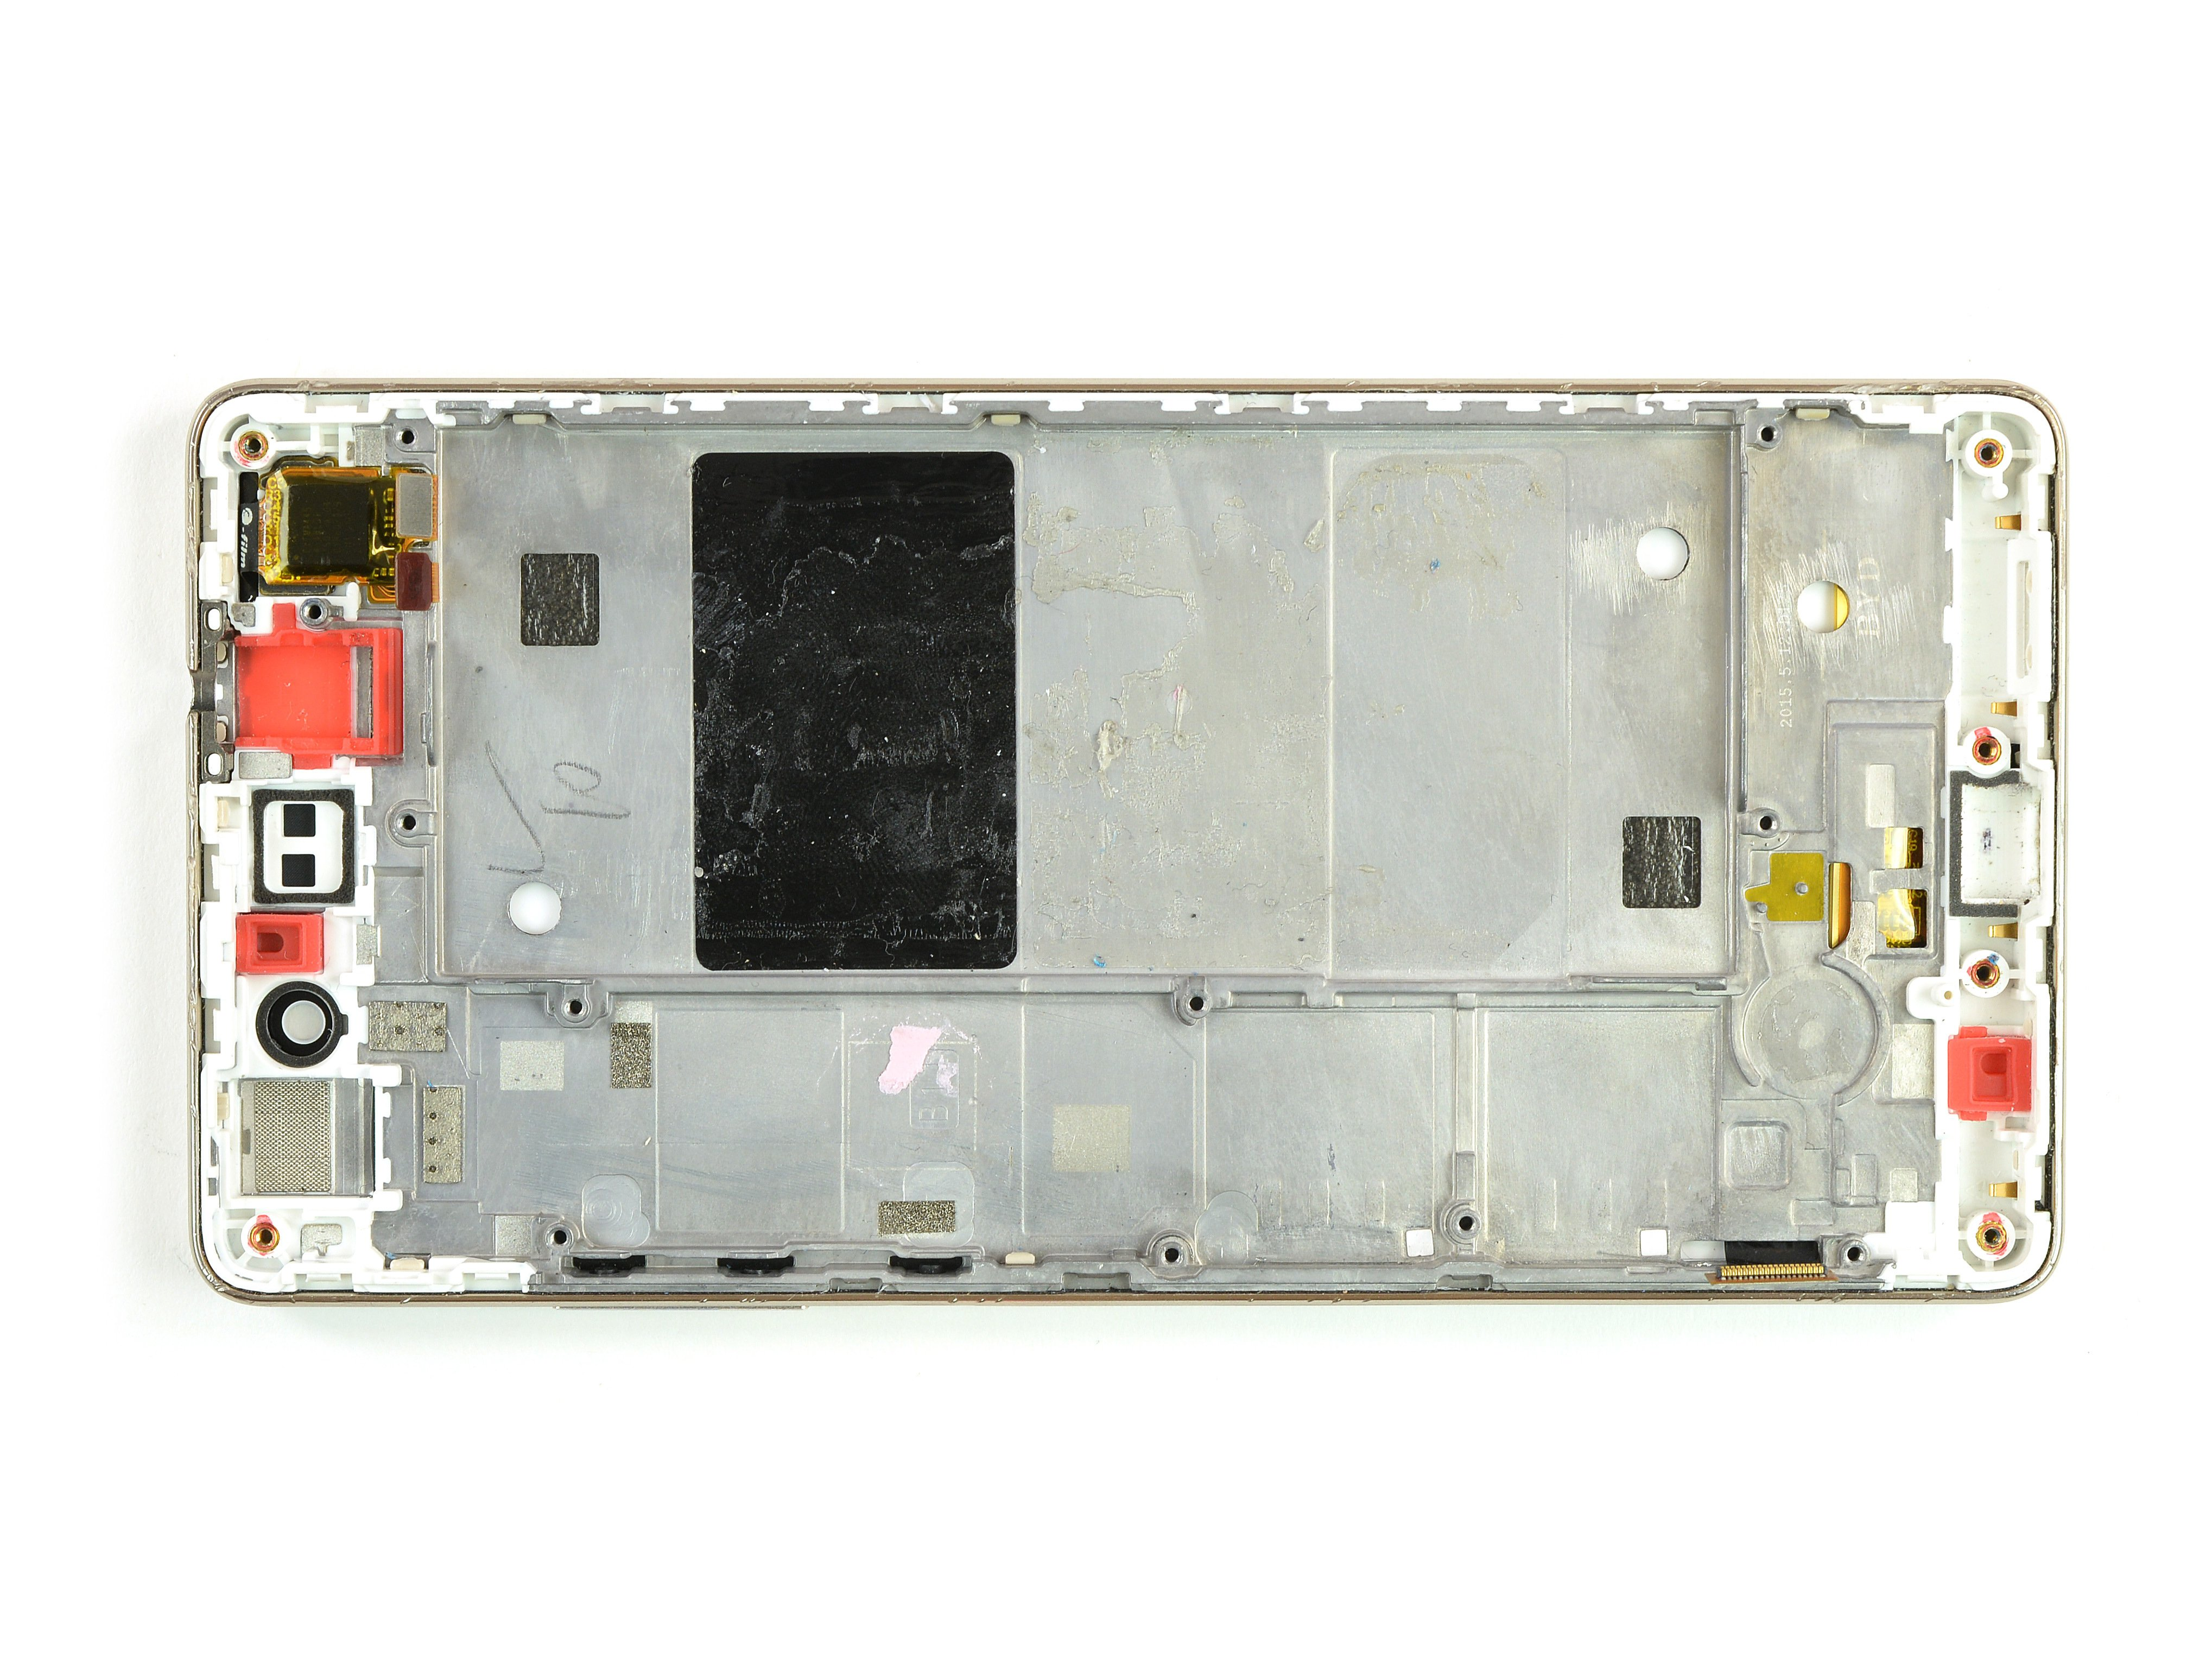 Huawei P8 Lite Display with Frame Replacement - iFixit